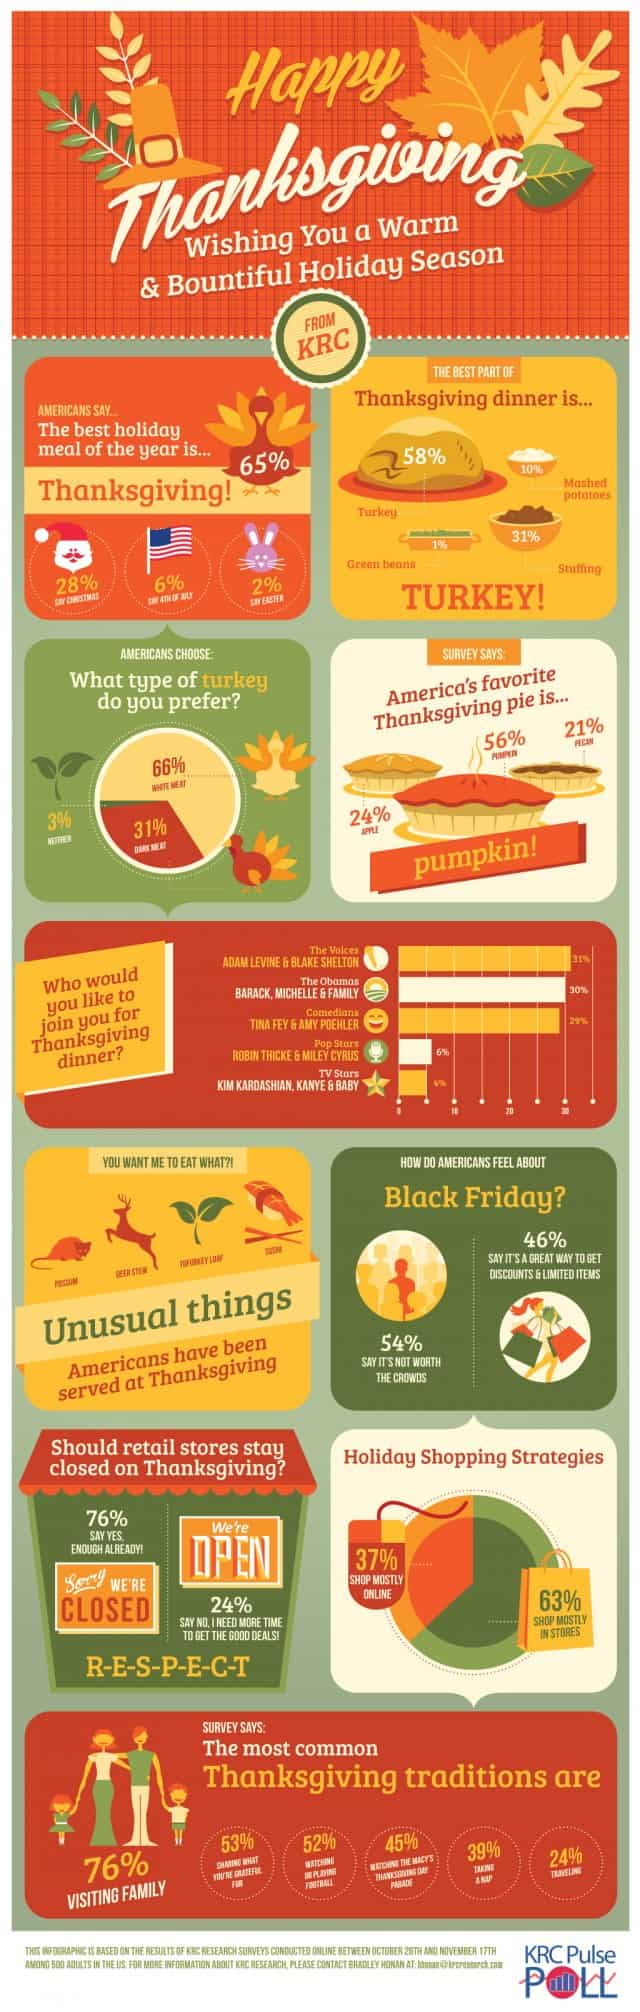 Happy Thanksgiving Infographic